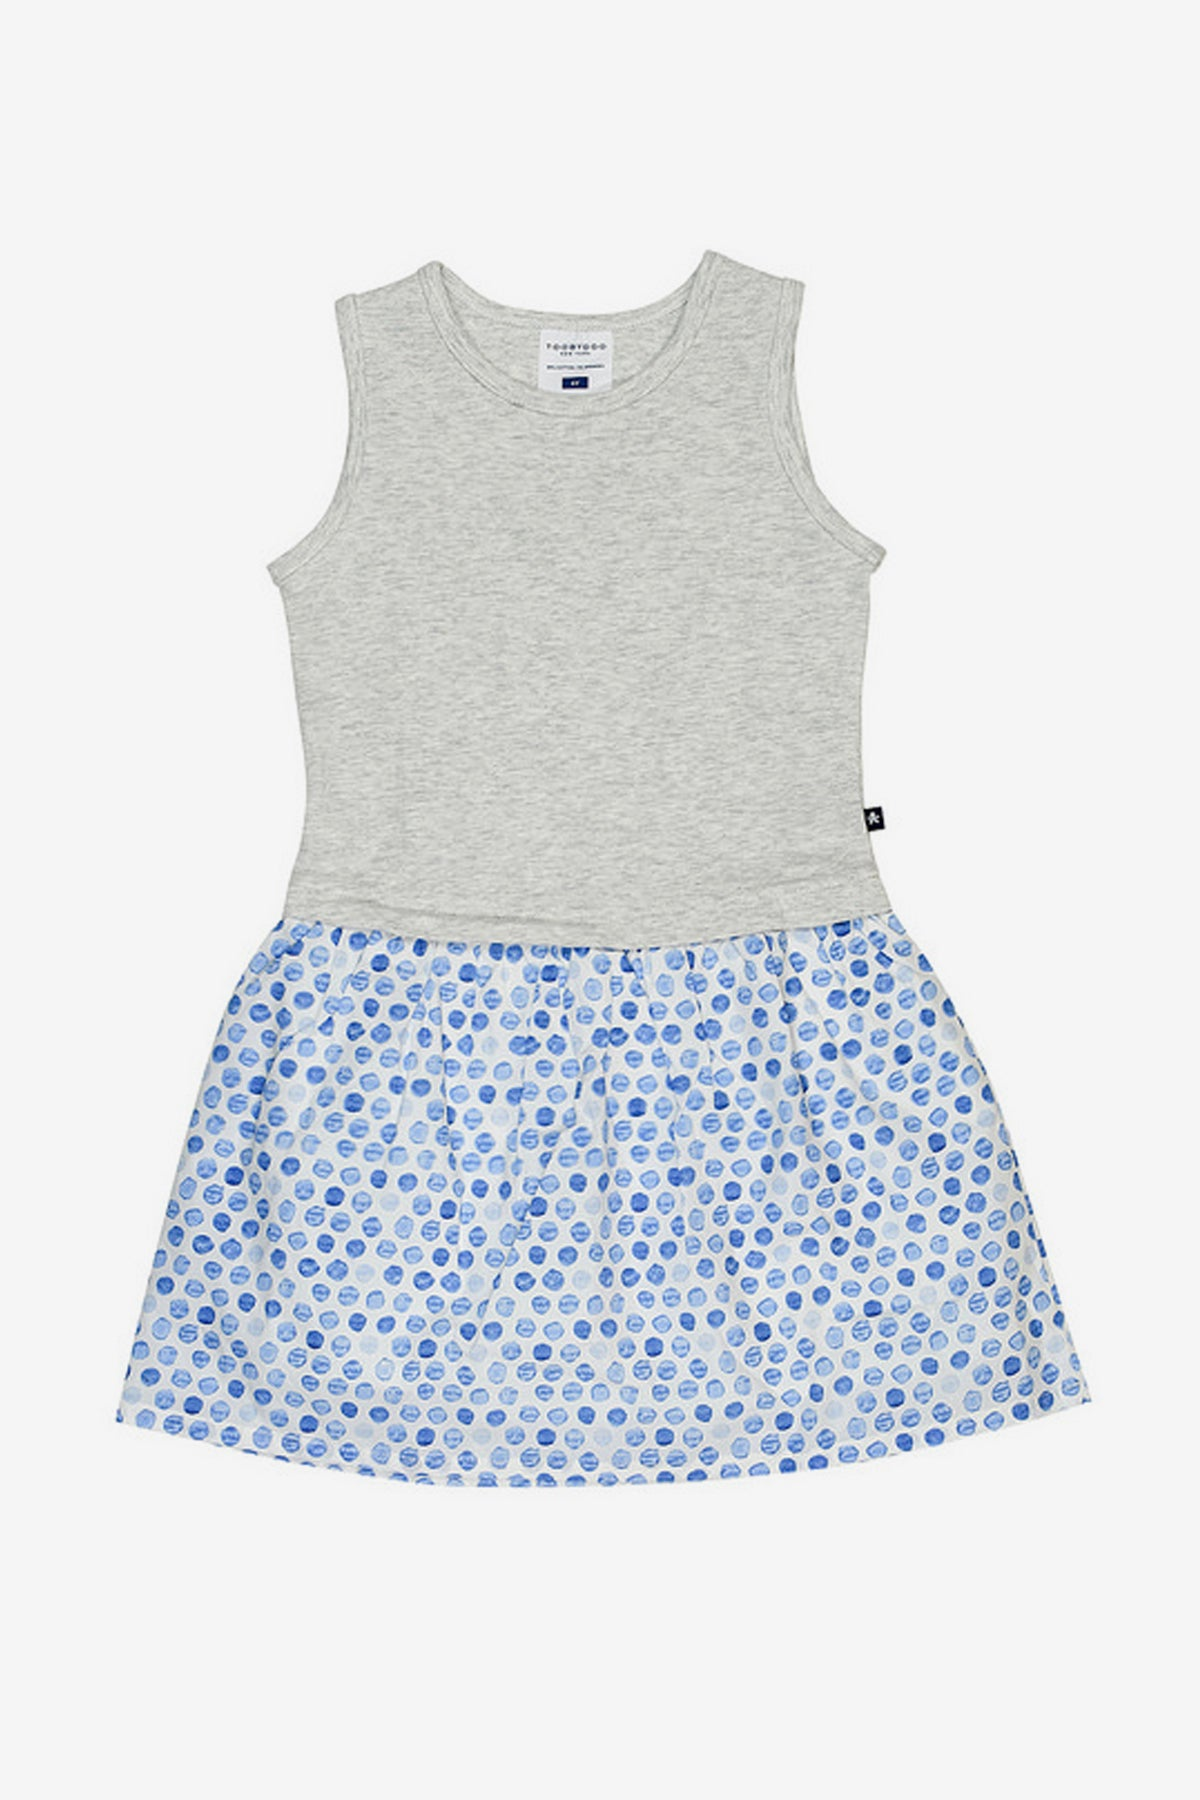 Toobydoo Girls Jersey and Woven Dress